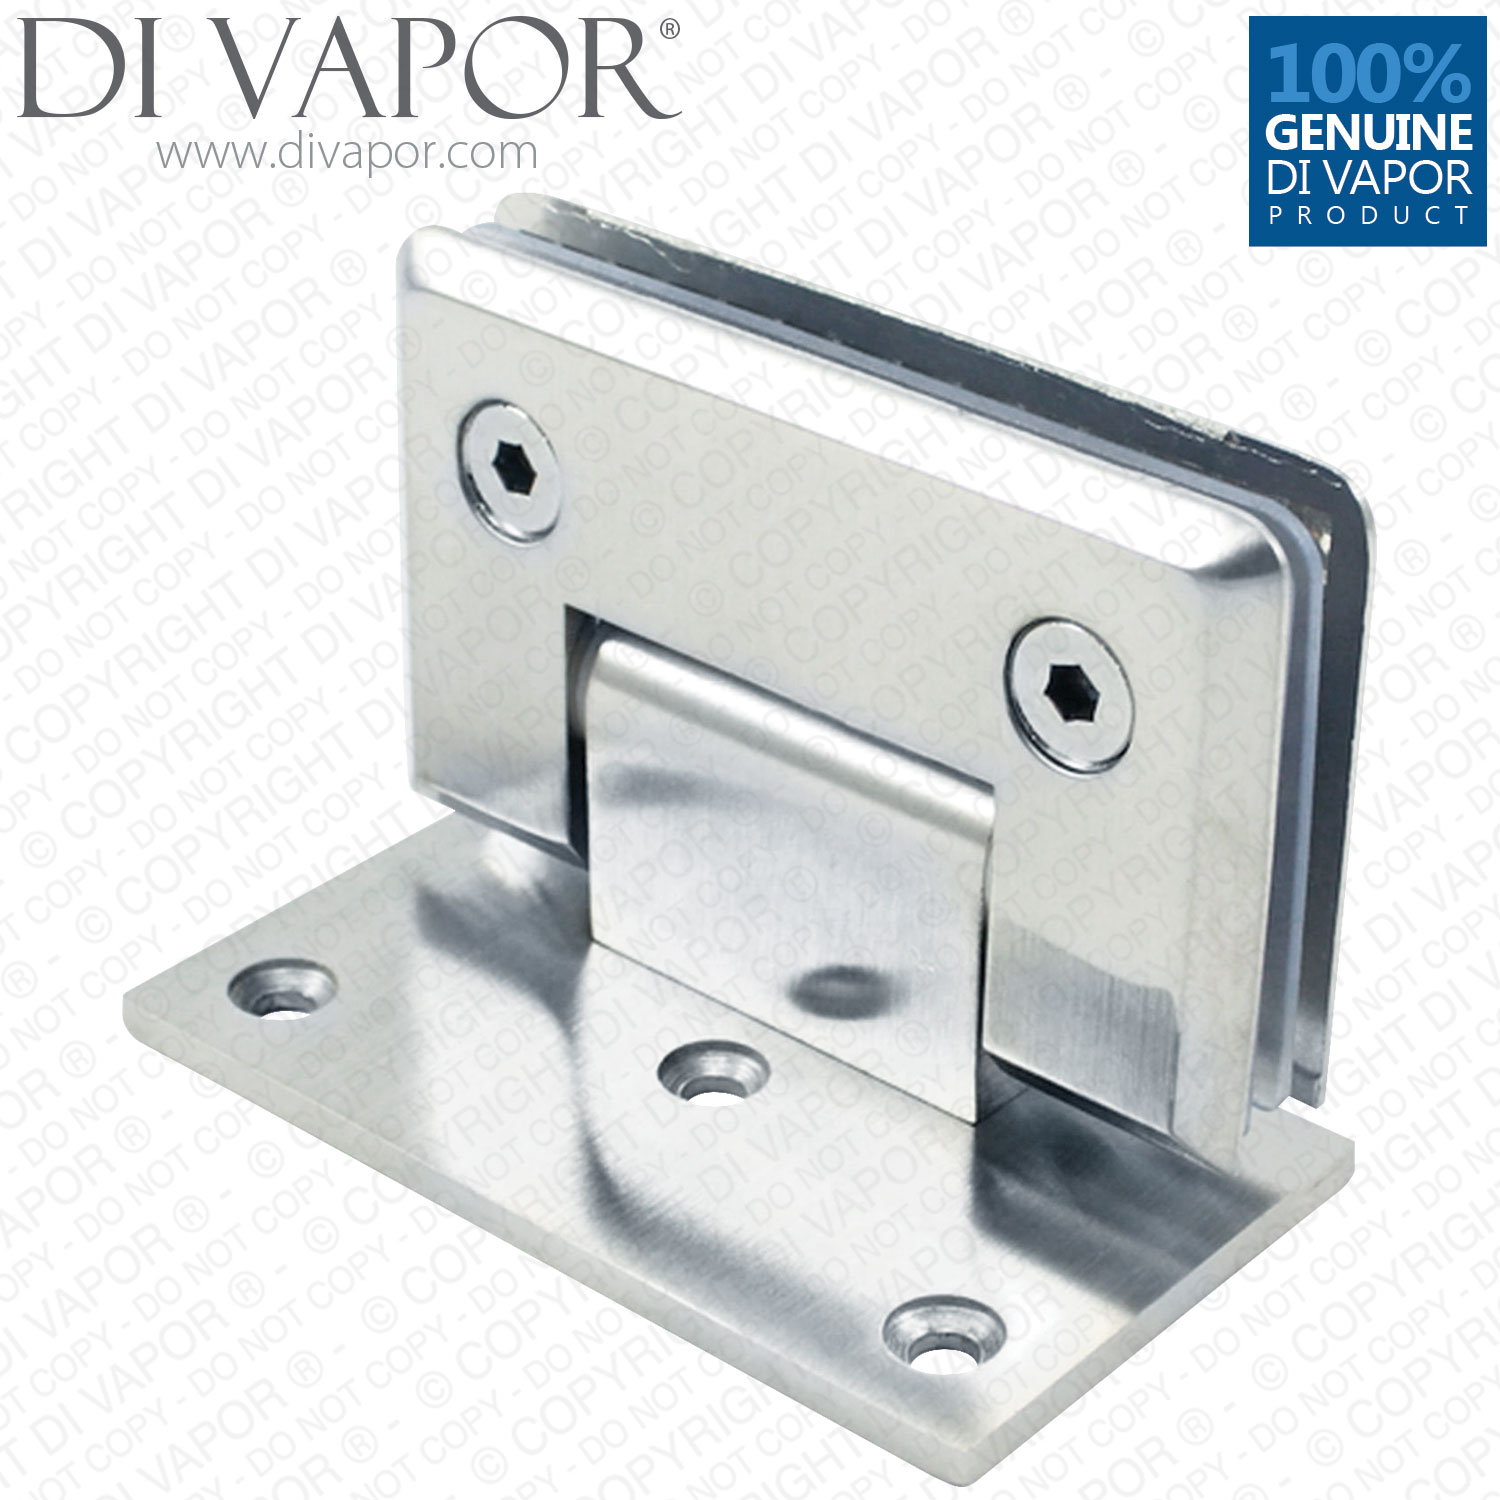 90 Degree Glass Door Hinge Bracket | Light Satin Nickel Finish ...